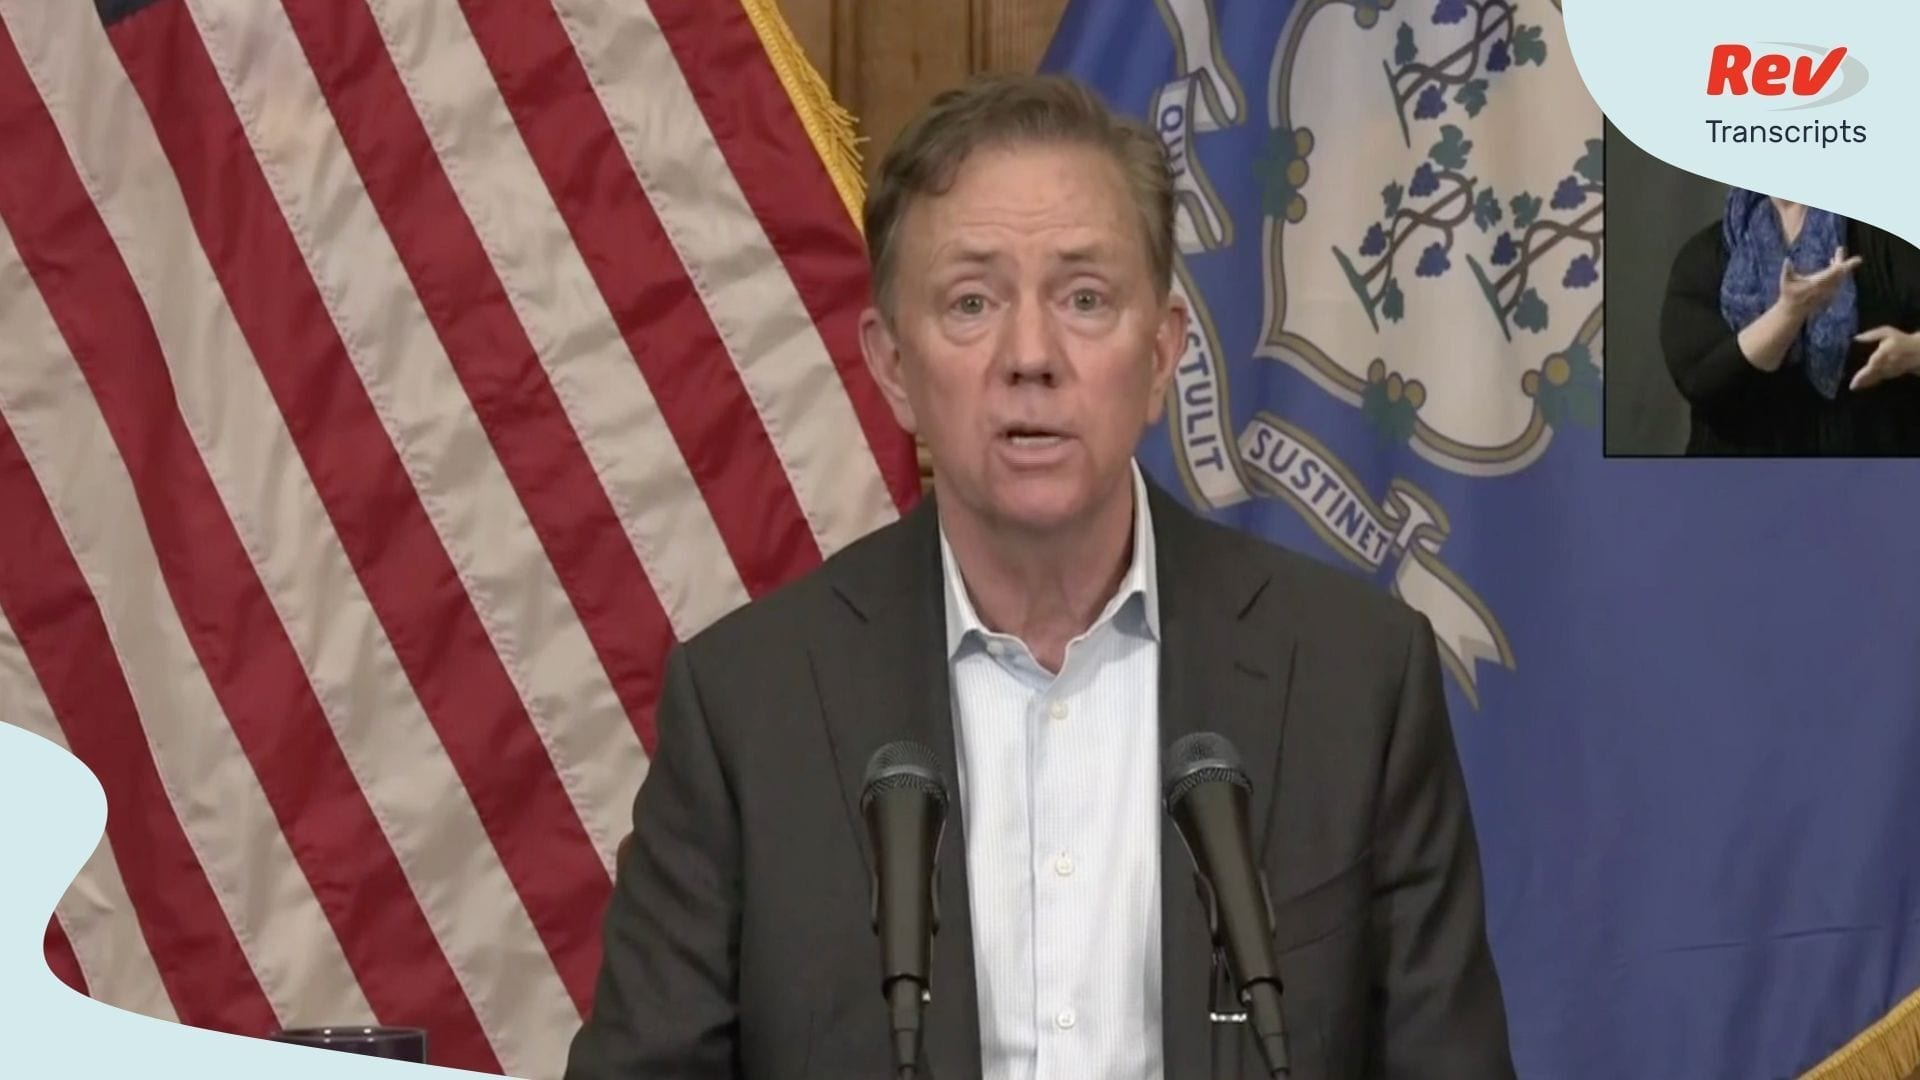 Ned Lamont May 1